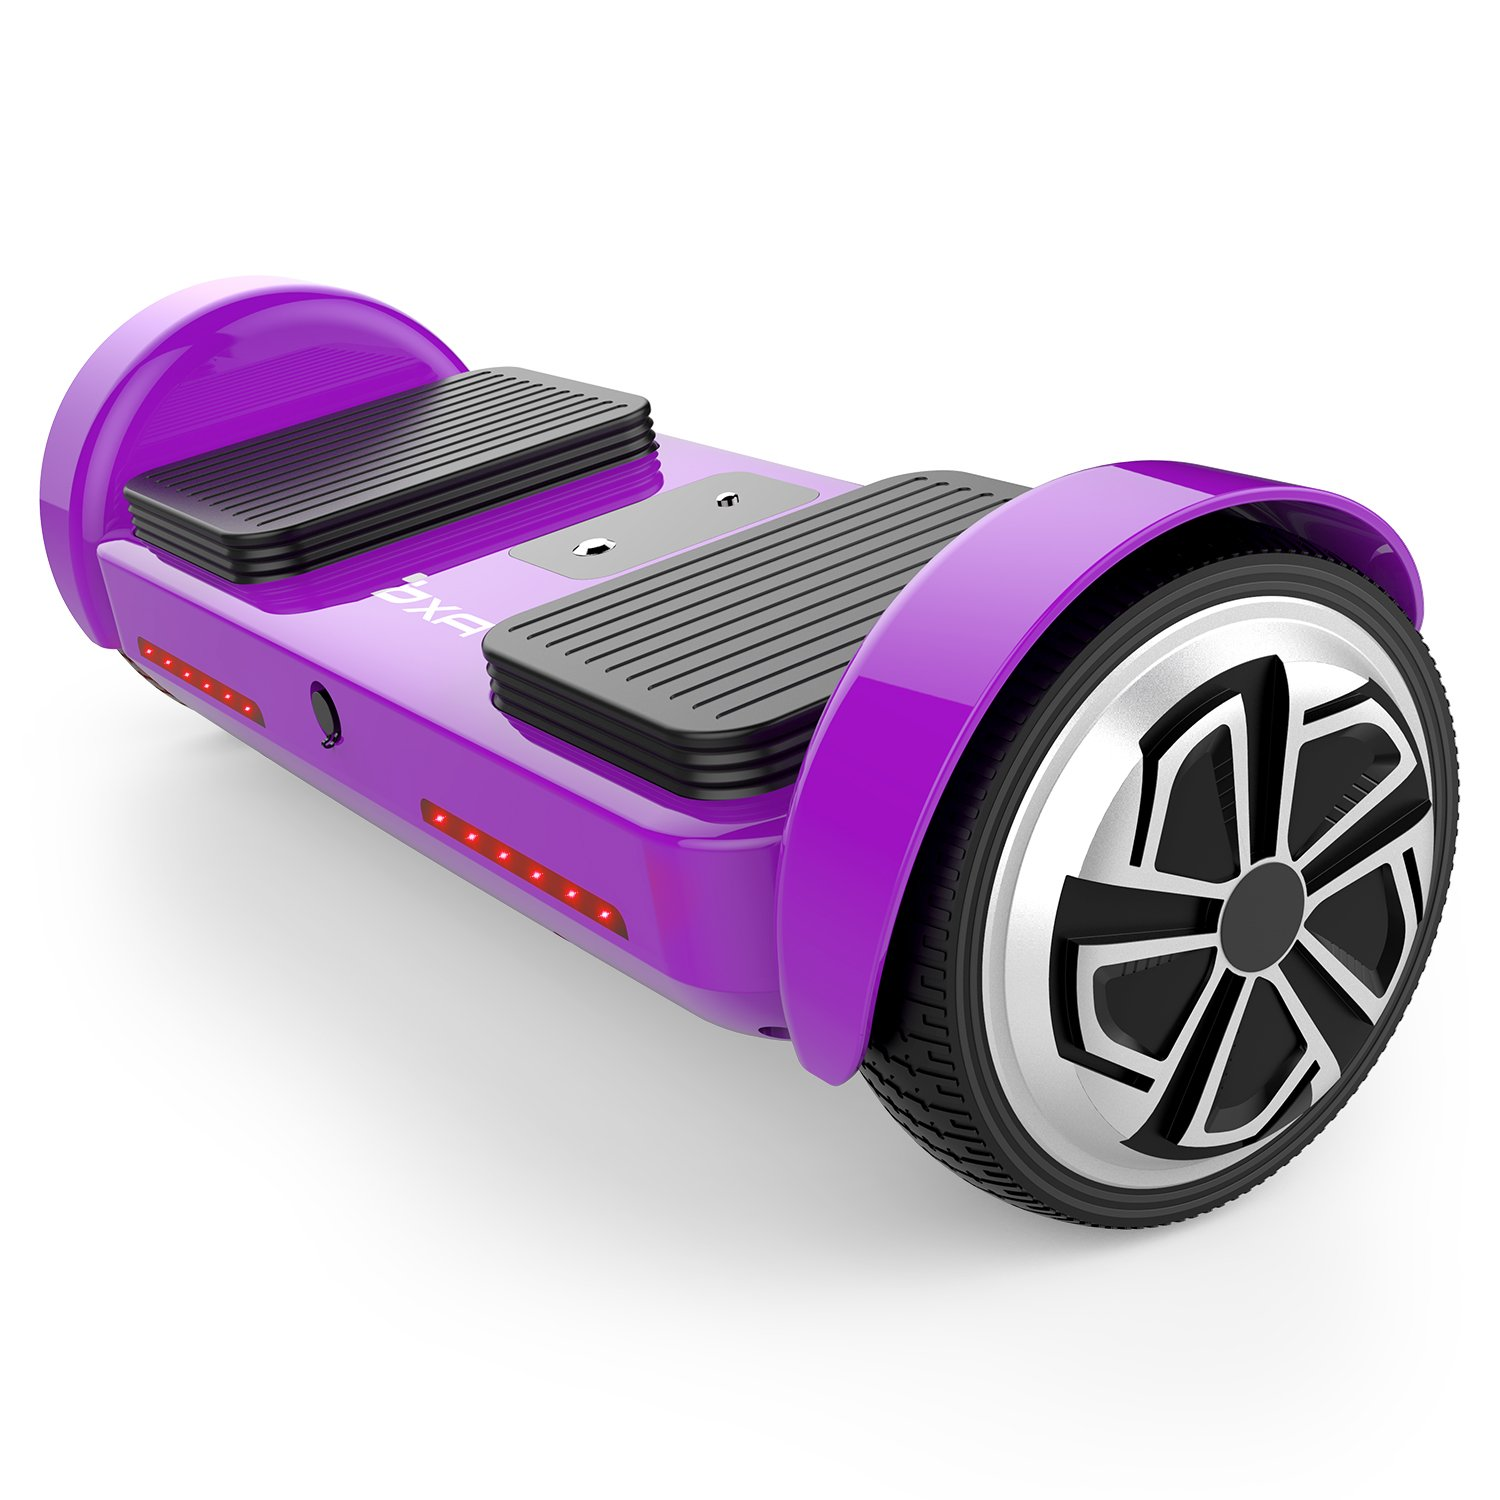 OXA Hoverboard - UL2272 Certified Self Balancing Scooter with Bluetooth Speaker and Headlights, 20 lithium batteries (144 Wh) ensure 17 km range on a single charge, 2 modes for all ages (2) by OXA